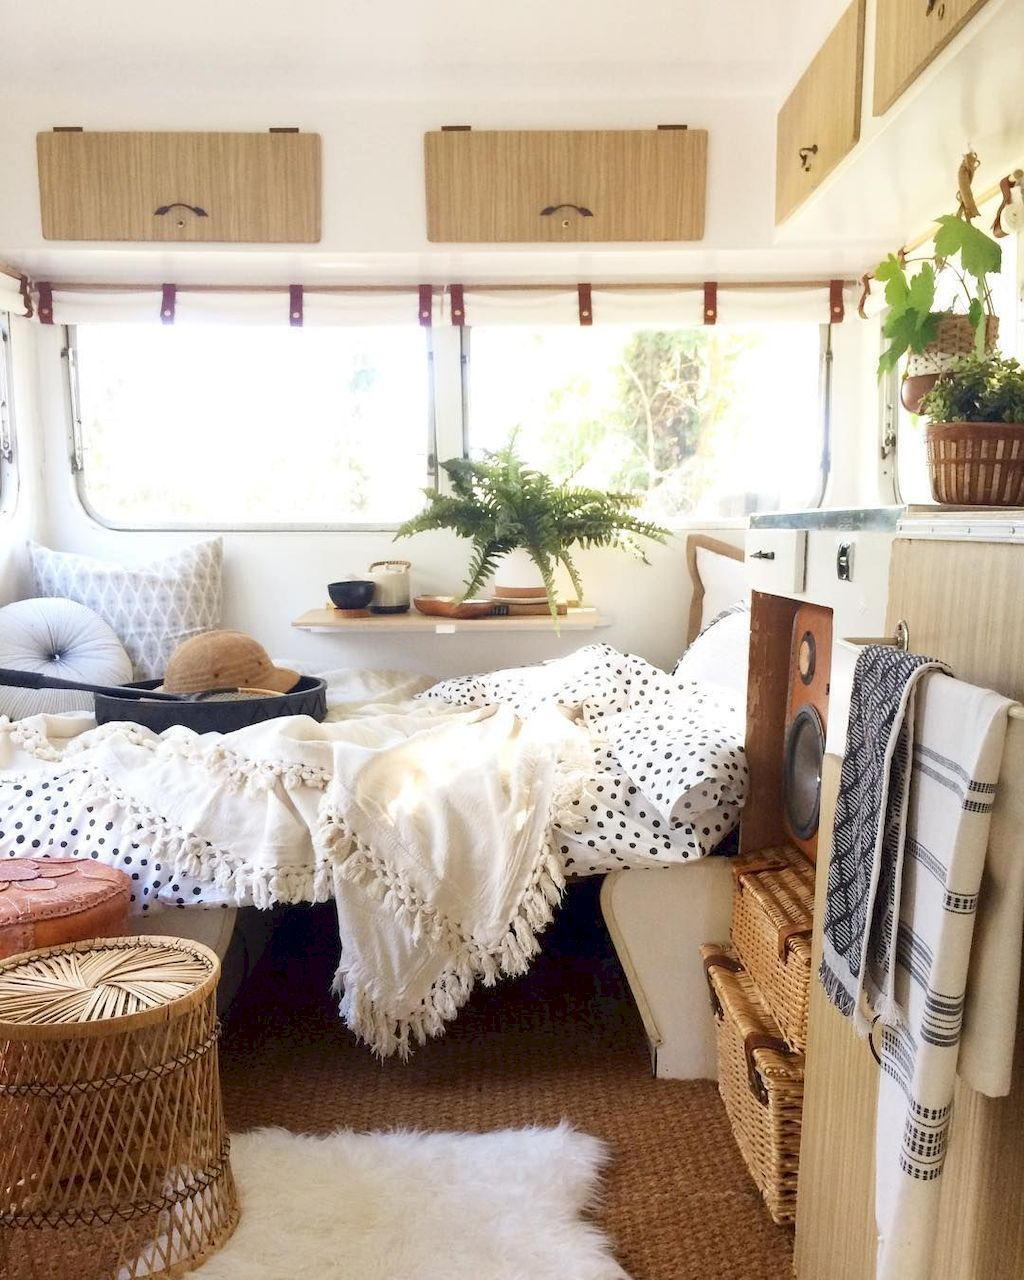 Implausible Camper Trailer Inside Design Concepts for You , /... ,  ... -  Implausible Camper Trail